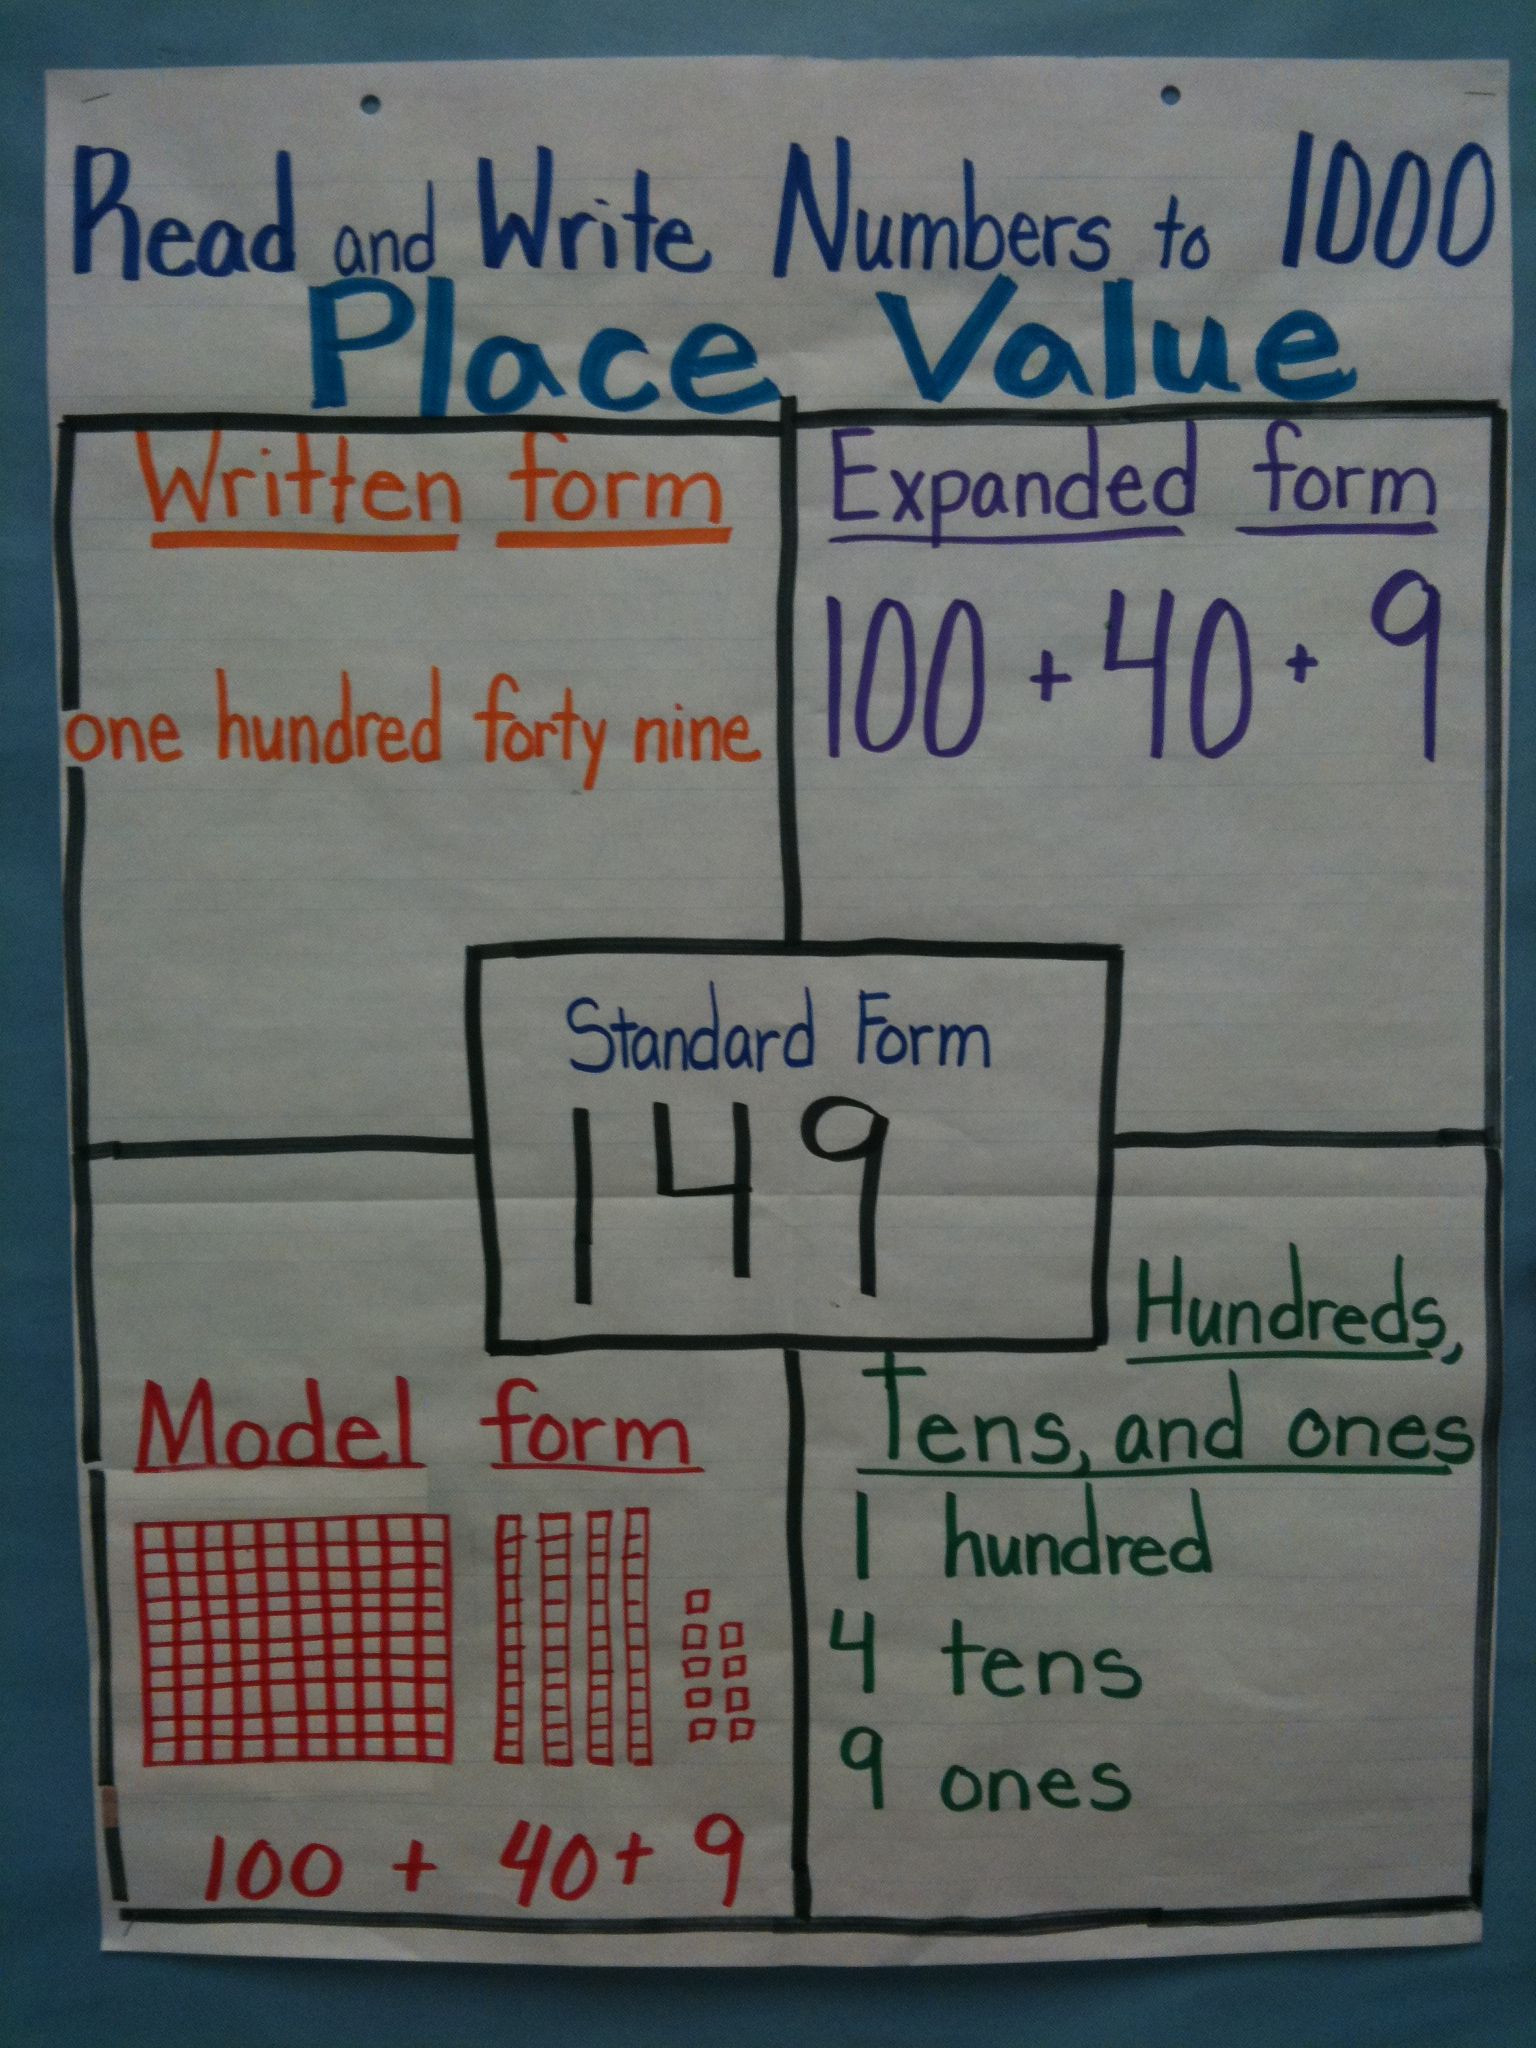 Expanded form Worksheets Second Grade Place Value Chart Love This I Want to Make A Layout and